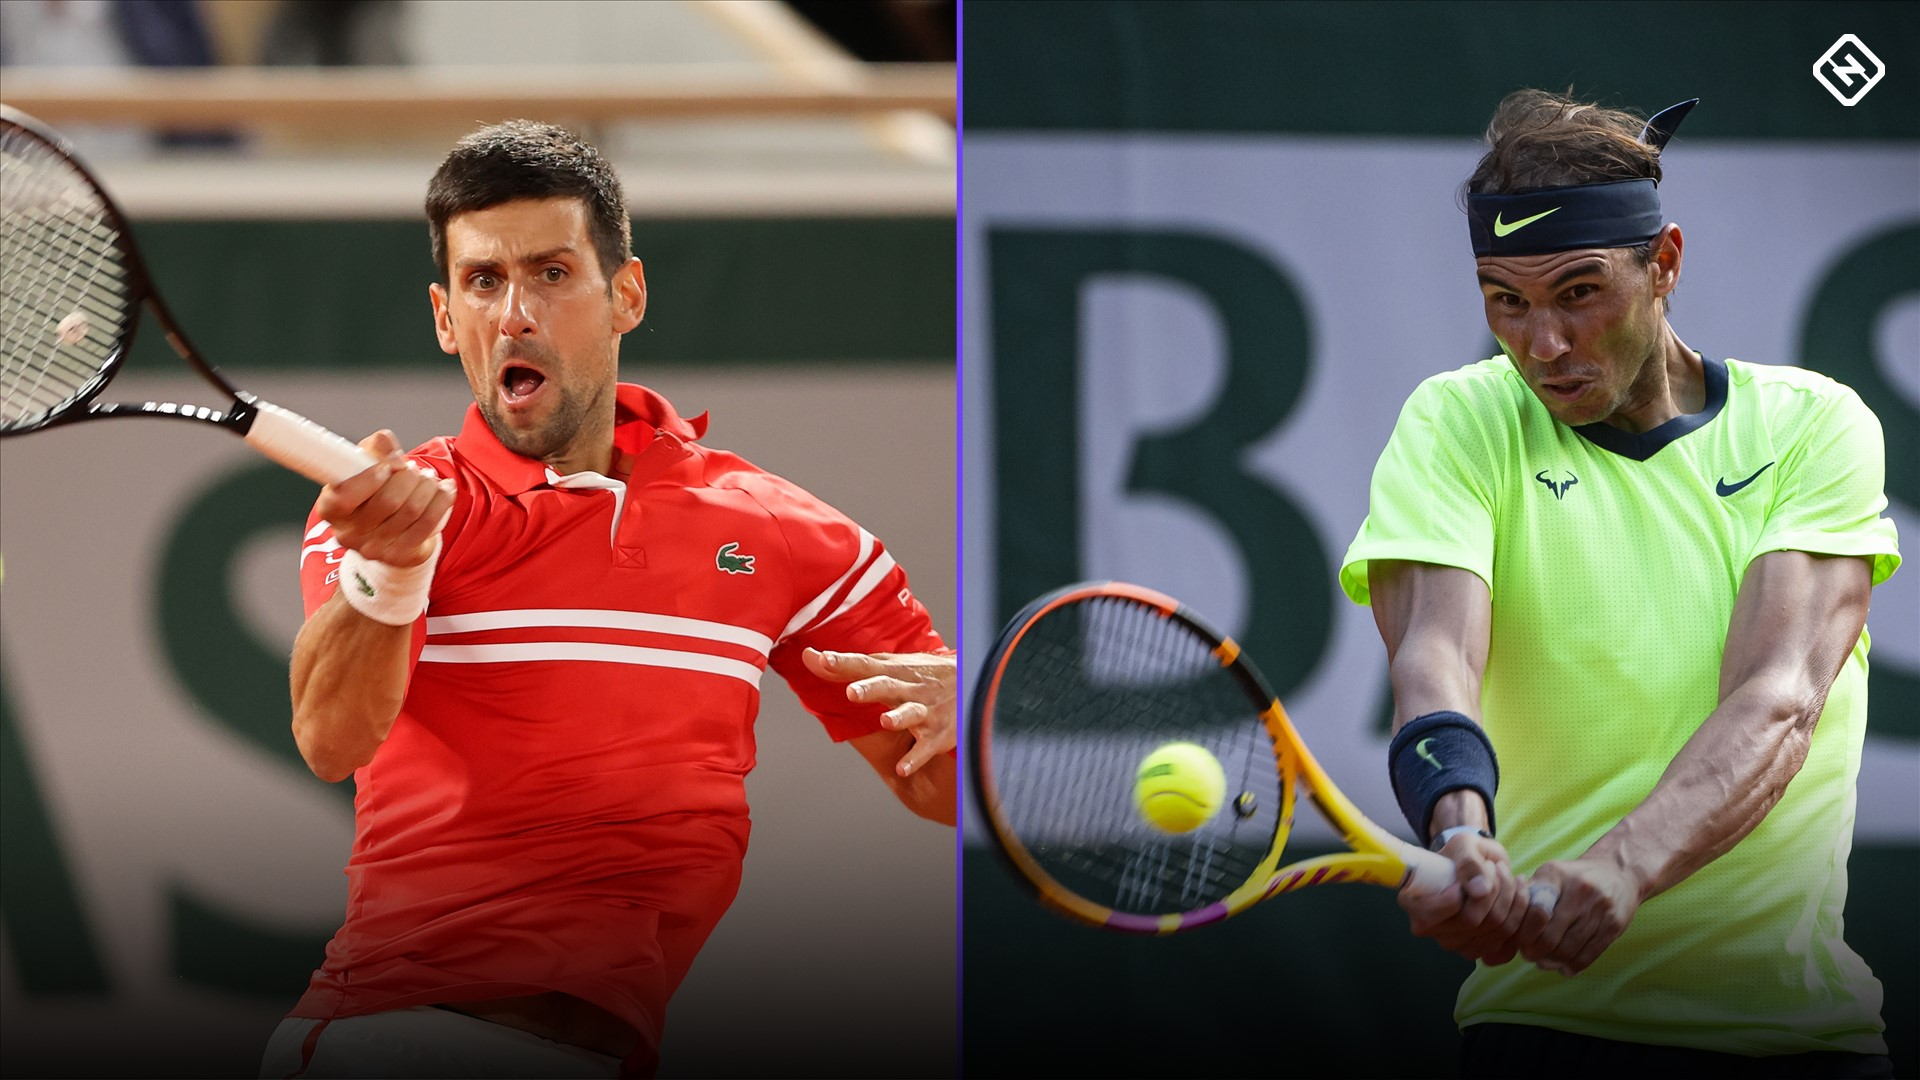 What channel is Novak Djokovic vs. Rafael Nadal from?  Television coverage, live broadcast of the French Open semi-finals